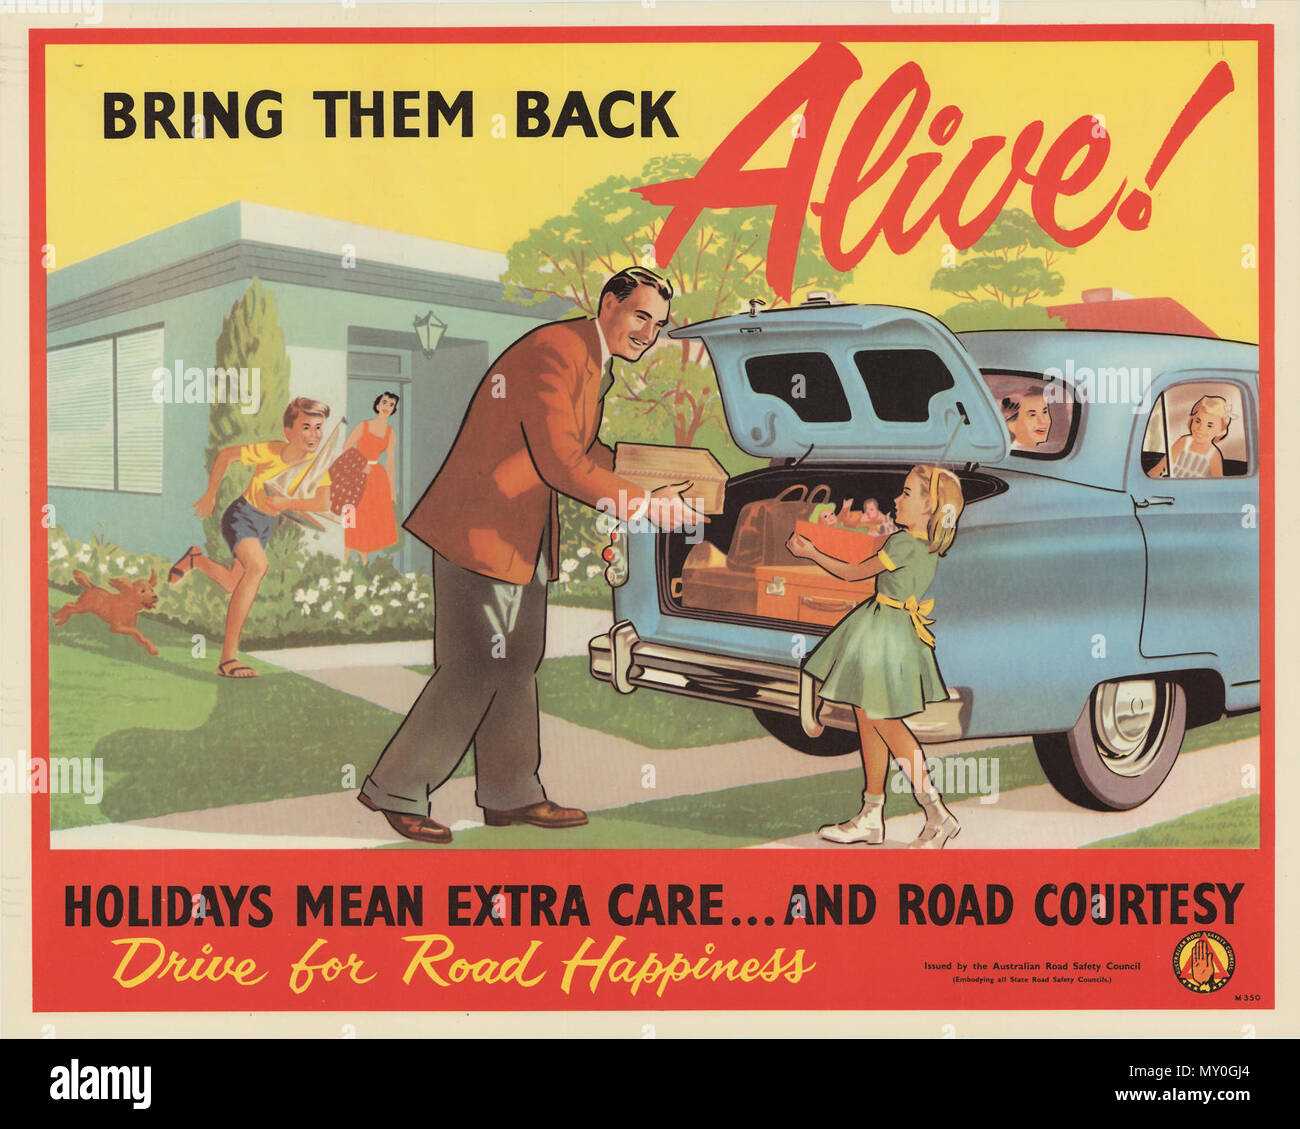 Bring Them Back Alive Road Safety Poster Circa 1939 1957 Warning On Road Safety Melbourne Sunday In A Grim Warning Tonight The President Of The Australian Road Safety Council Mr T G